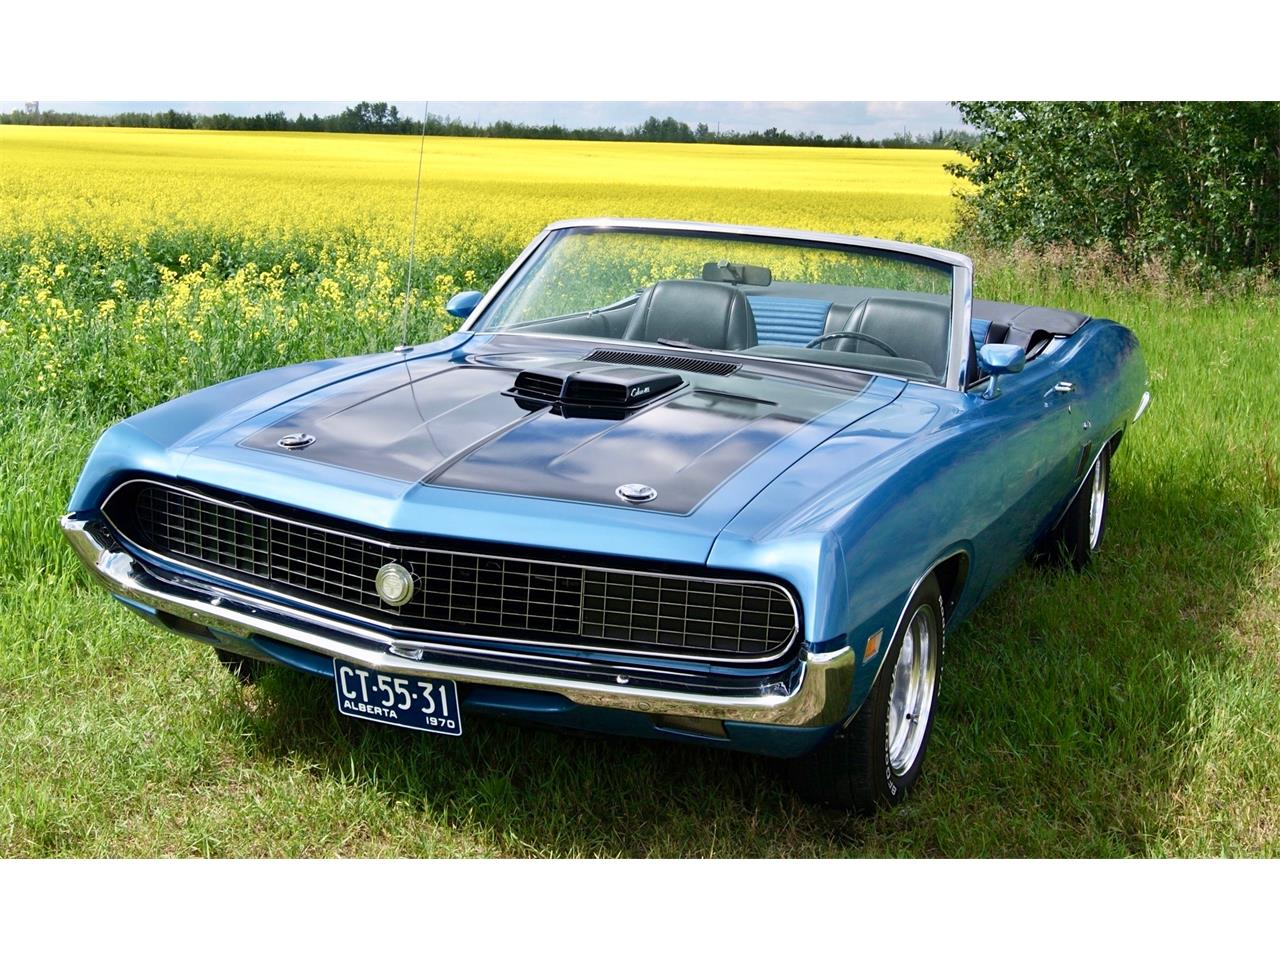 Best Used Cars Under 5000 Edmonton: 1970 Ford Torino For Sale